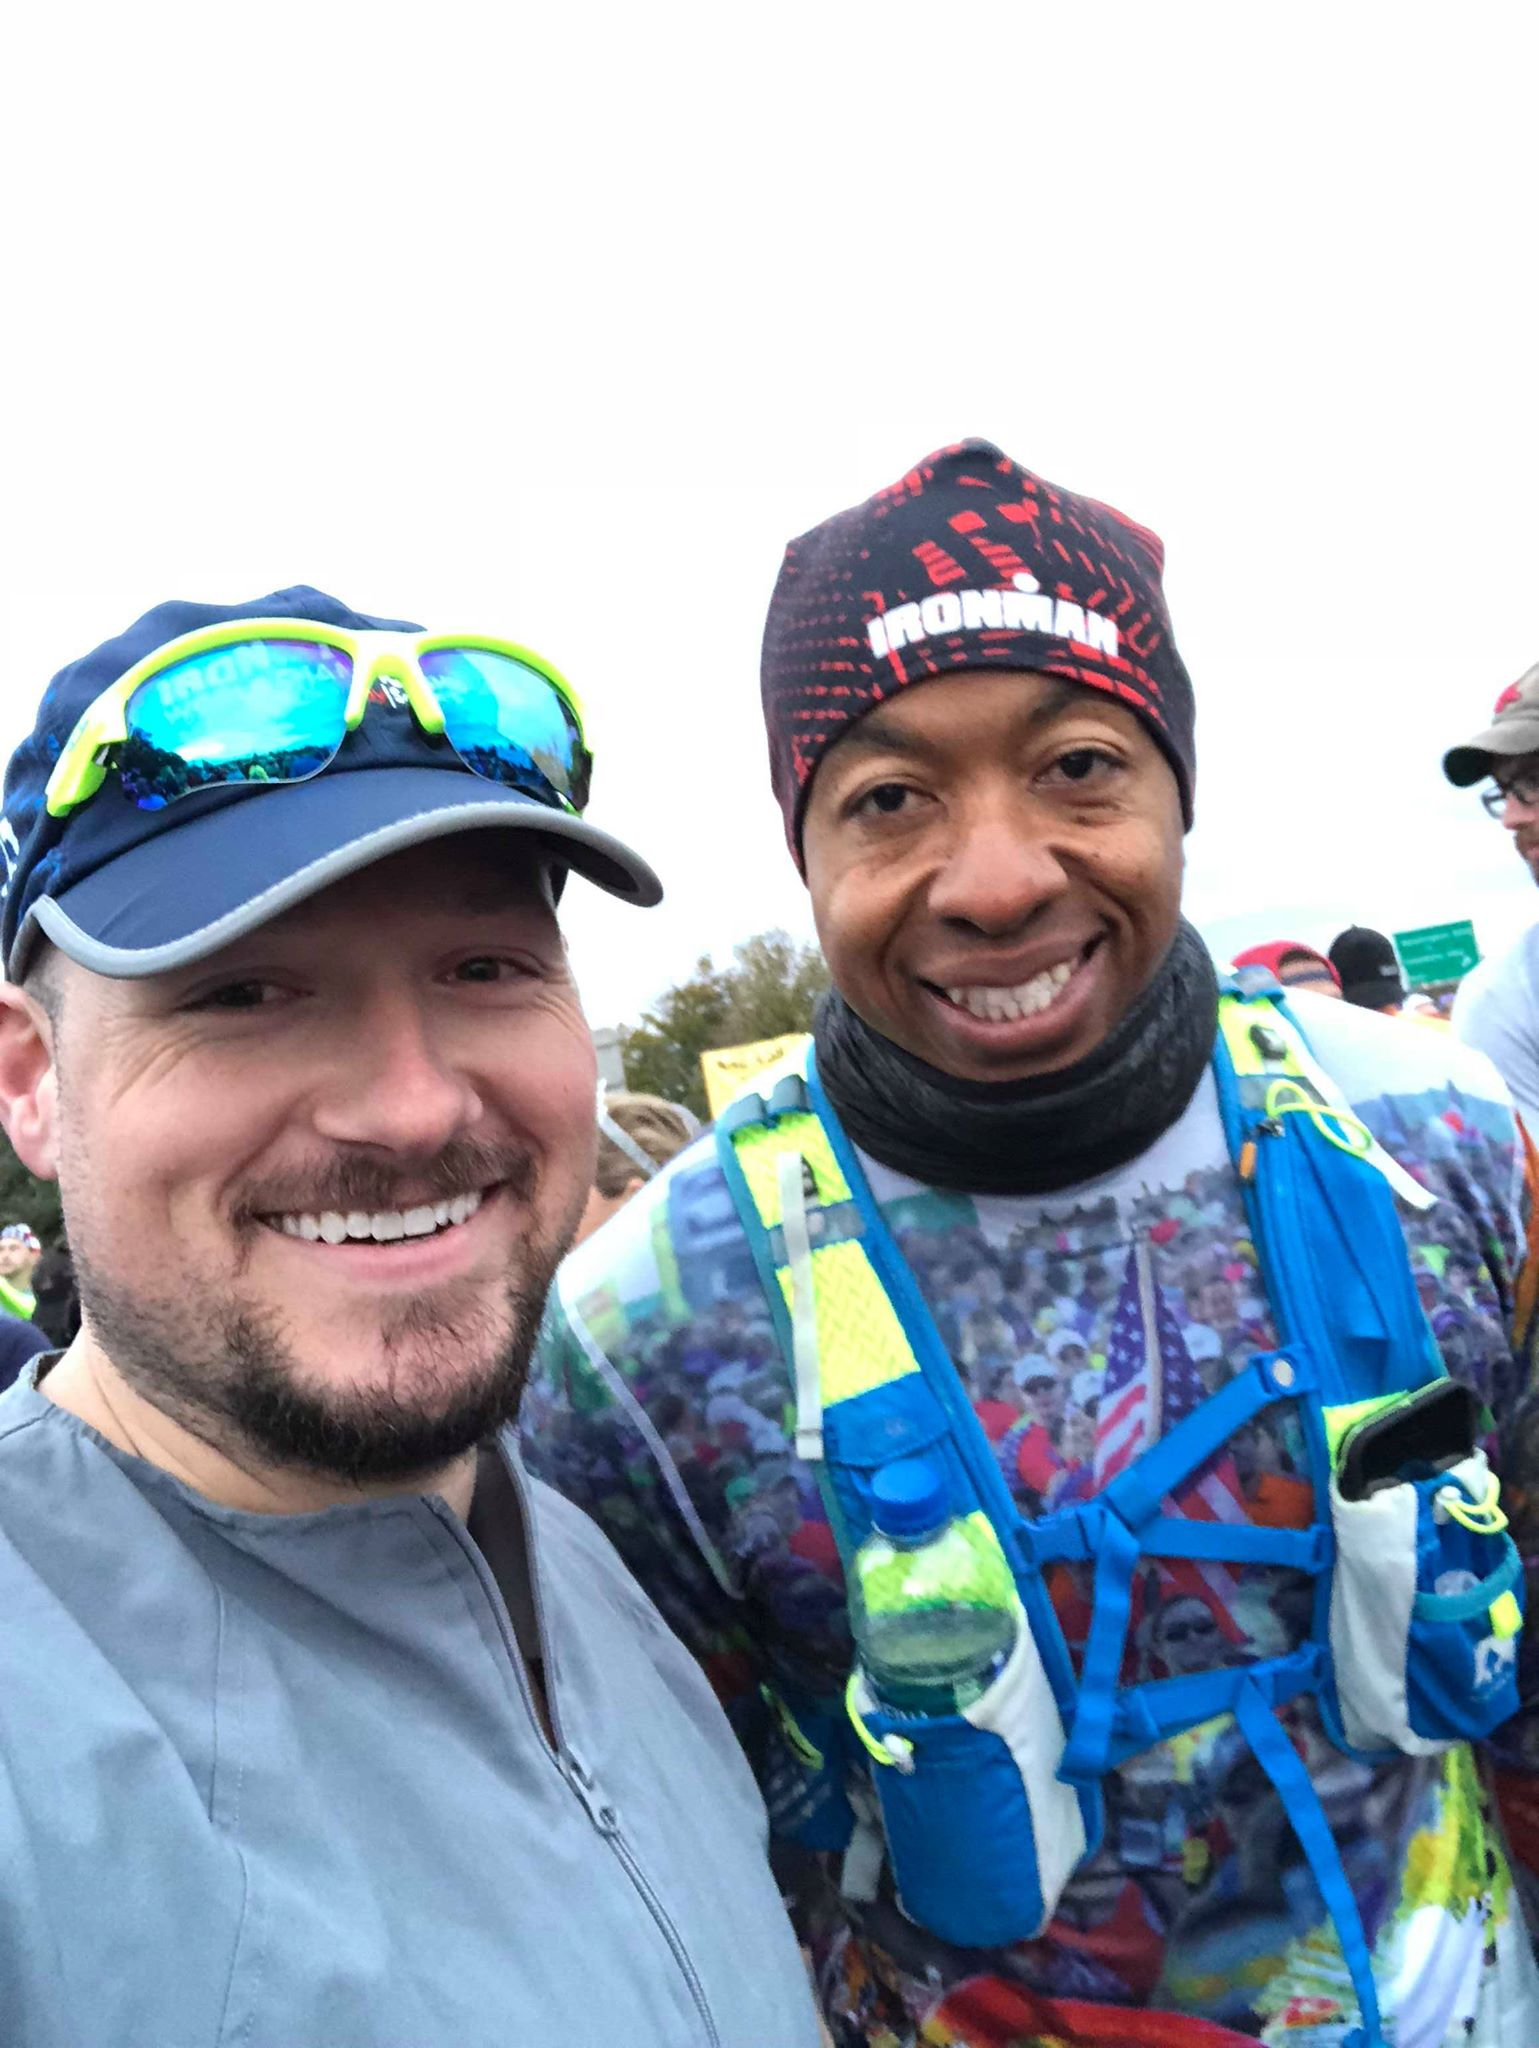 Coach_Terry_Wilson_Pursuit_of_The_Perfect_Race_Marine_Corps_Marathon_2018_17.jpg